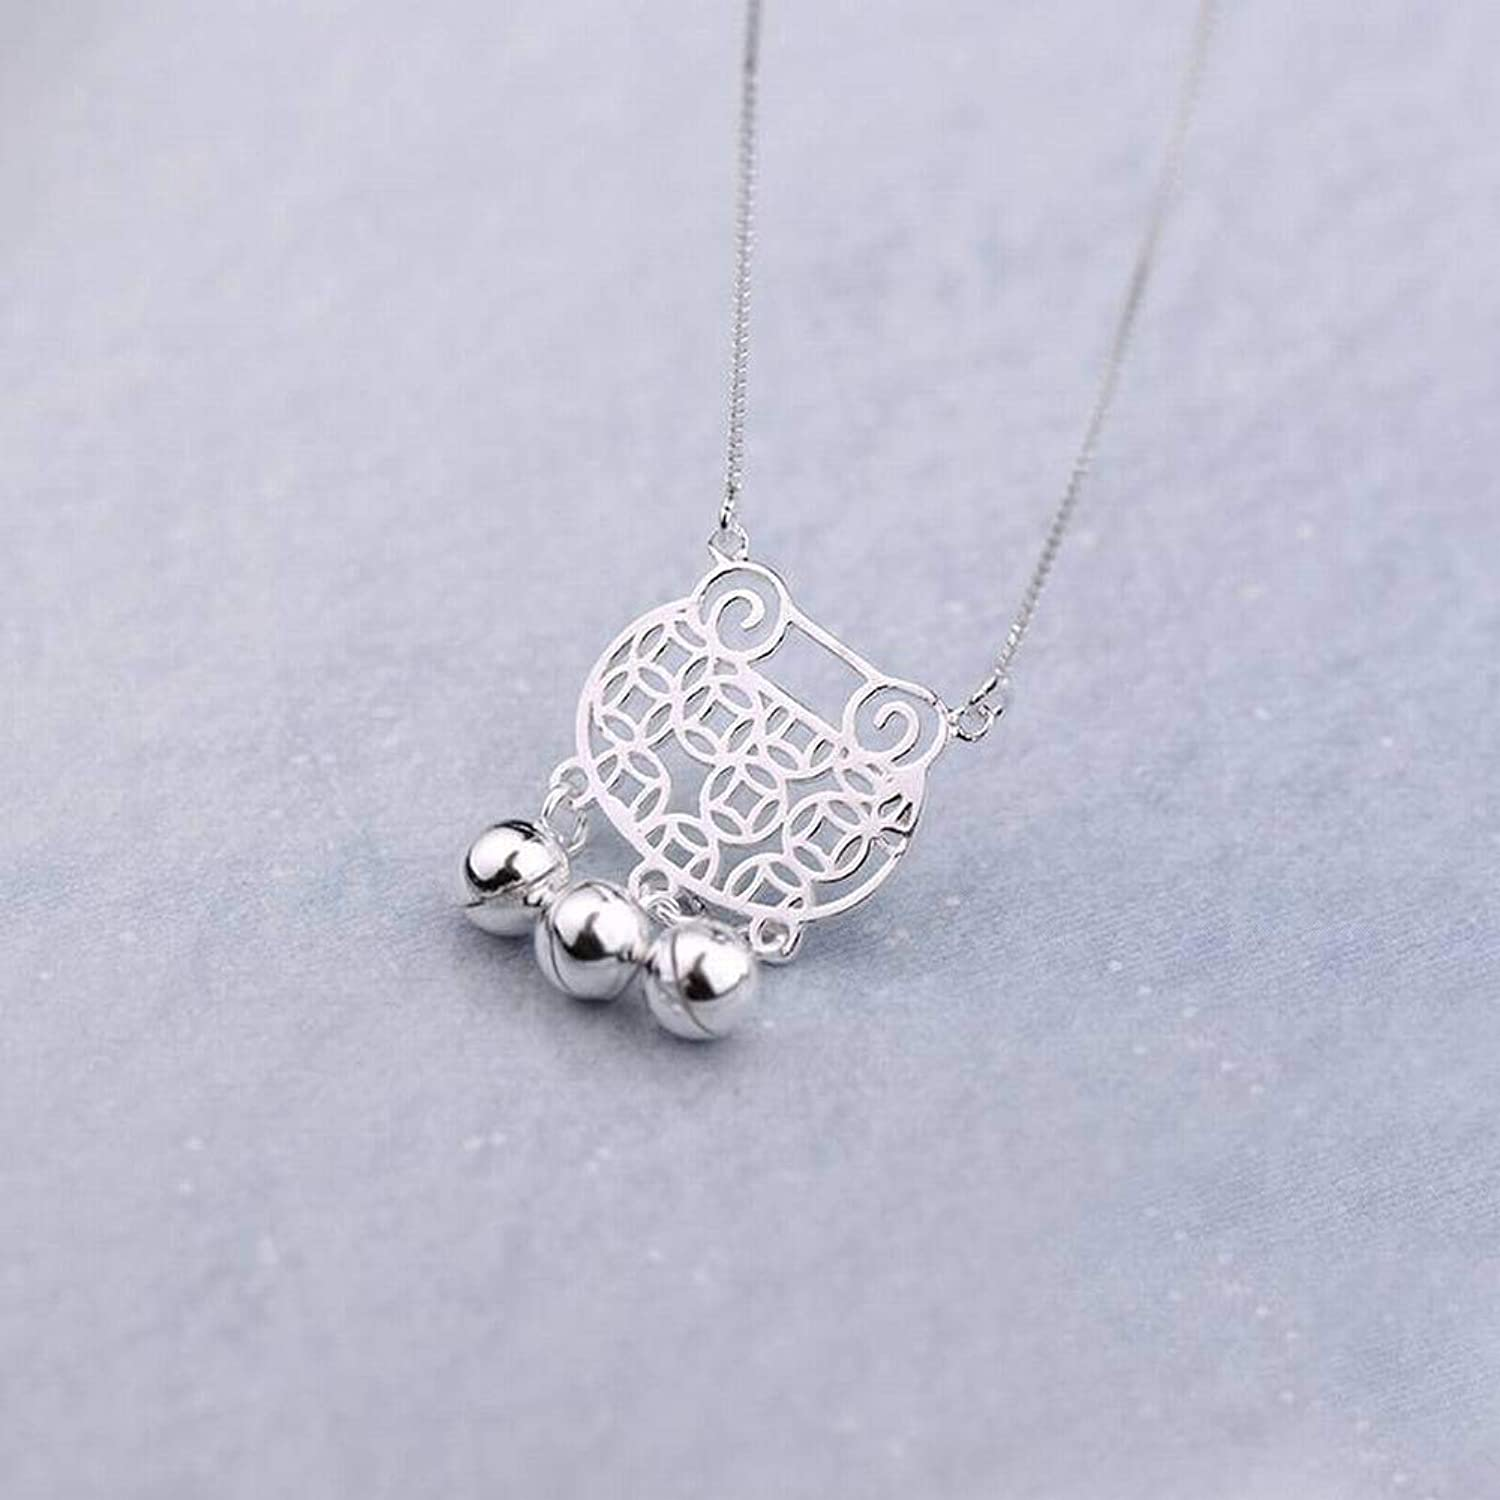 Pendant Necklaces for Women Women's Simple 925 Silver UShaped Plated Necklace S925 Sterling Silver Necklace Long Life Lock Hollow Bell Clavicle Chain Cute Match Bell Silver Necklace